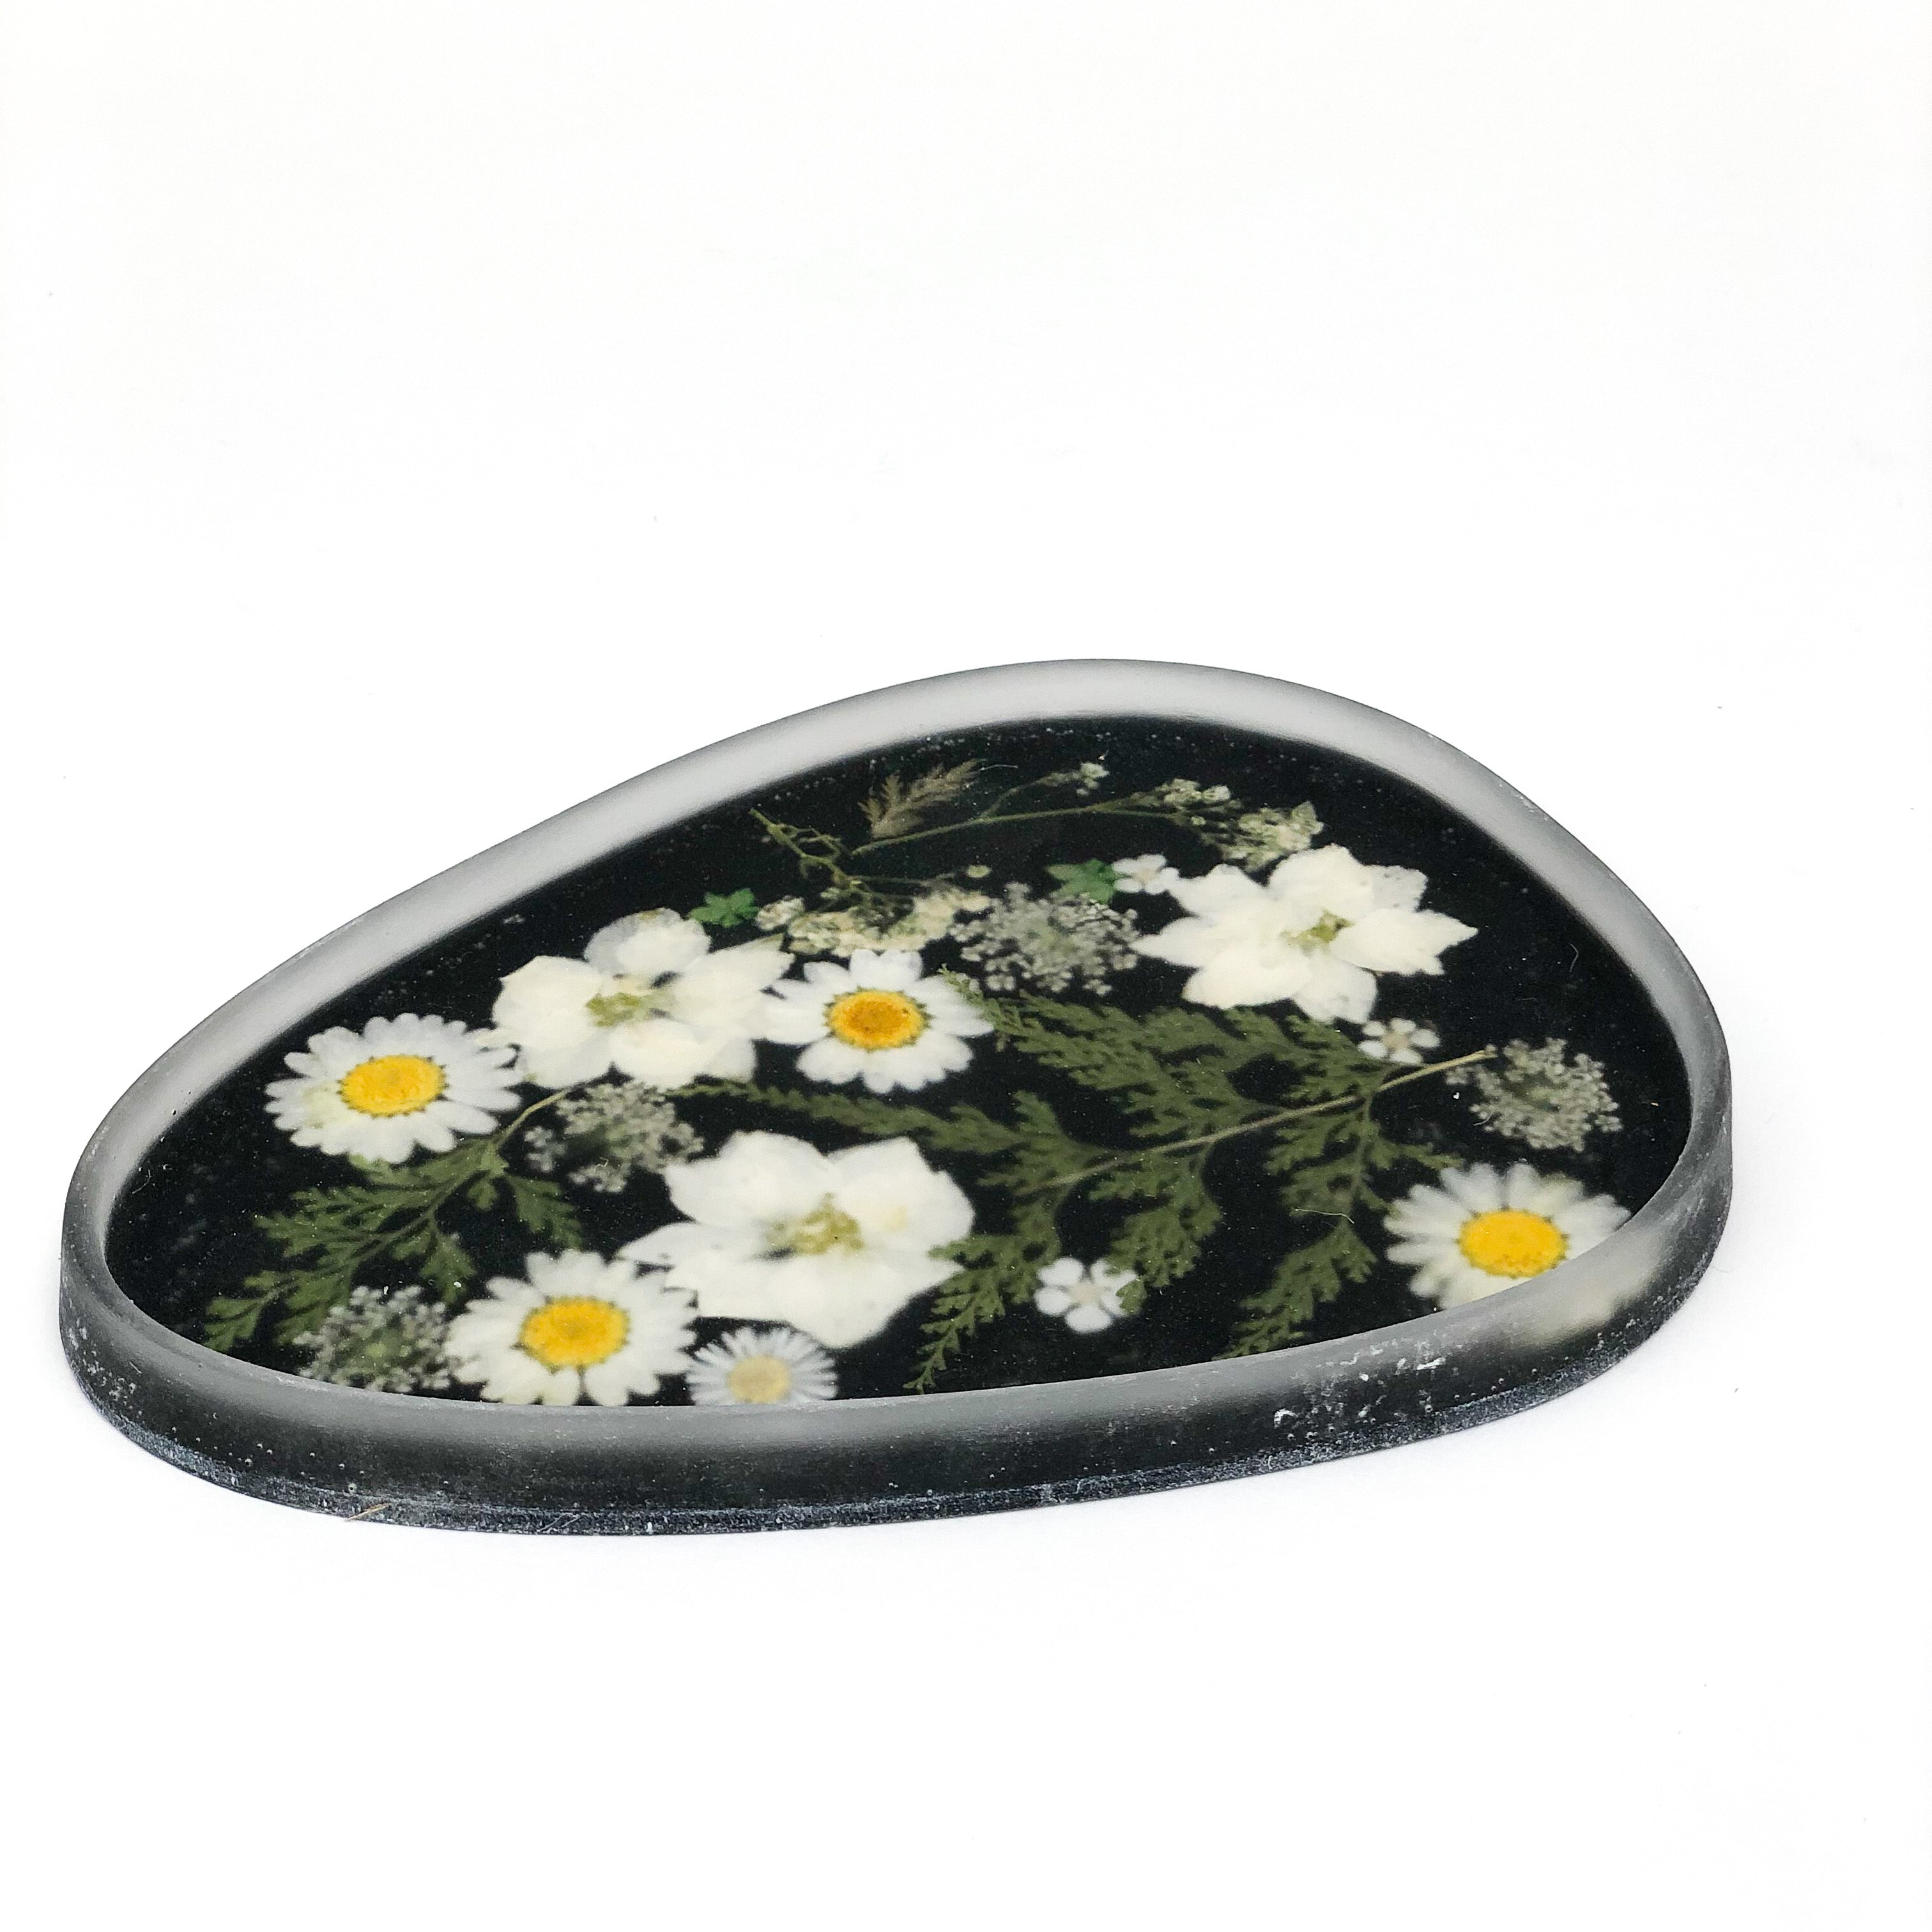 Whiskey + Wine - Floral Tray No. 1 (Large Black)